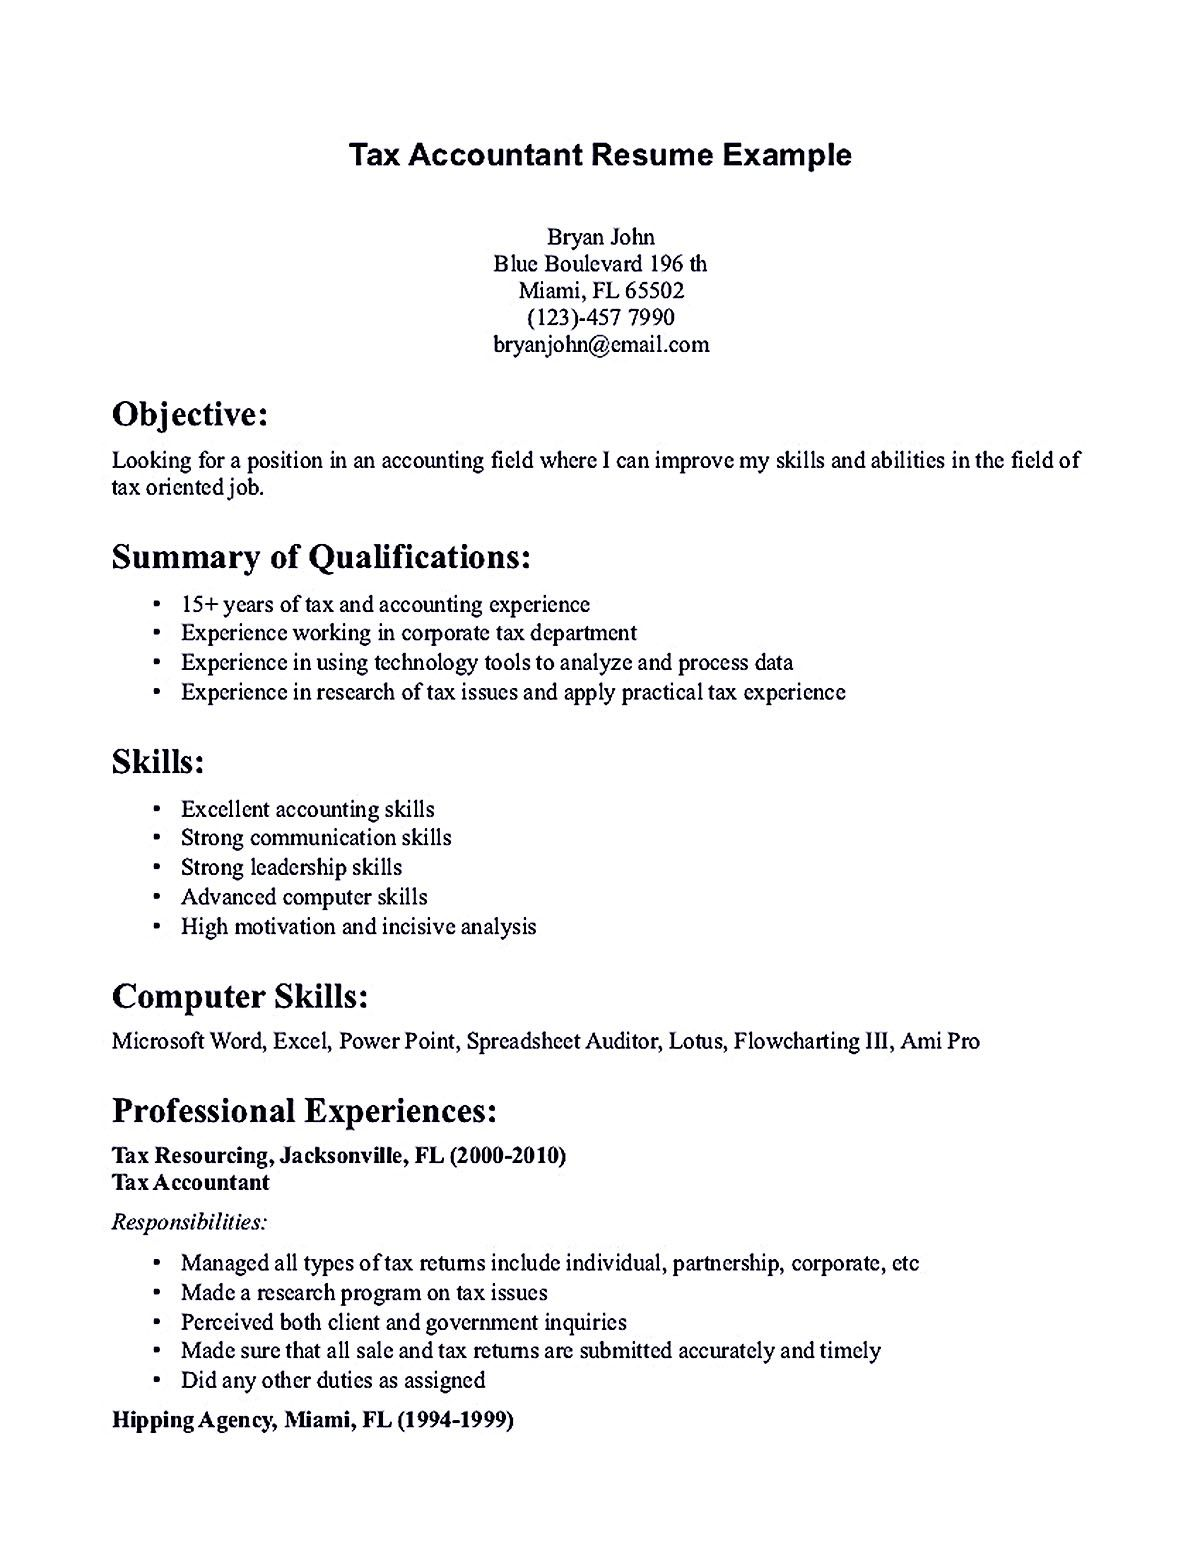 Writing Accountant Resume Sample Is Not That Complicated As How The Work Of Accountant Will Be You Can See Accountant Resume Resume Skills Resume Skills List